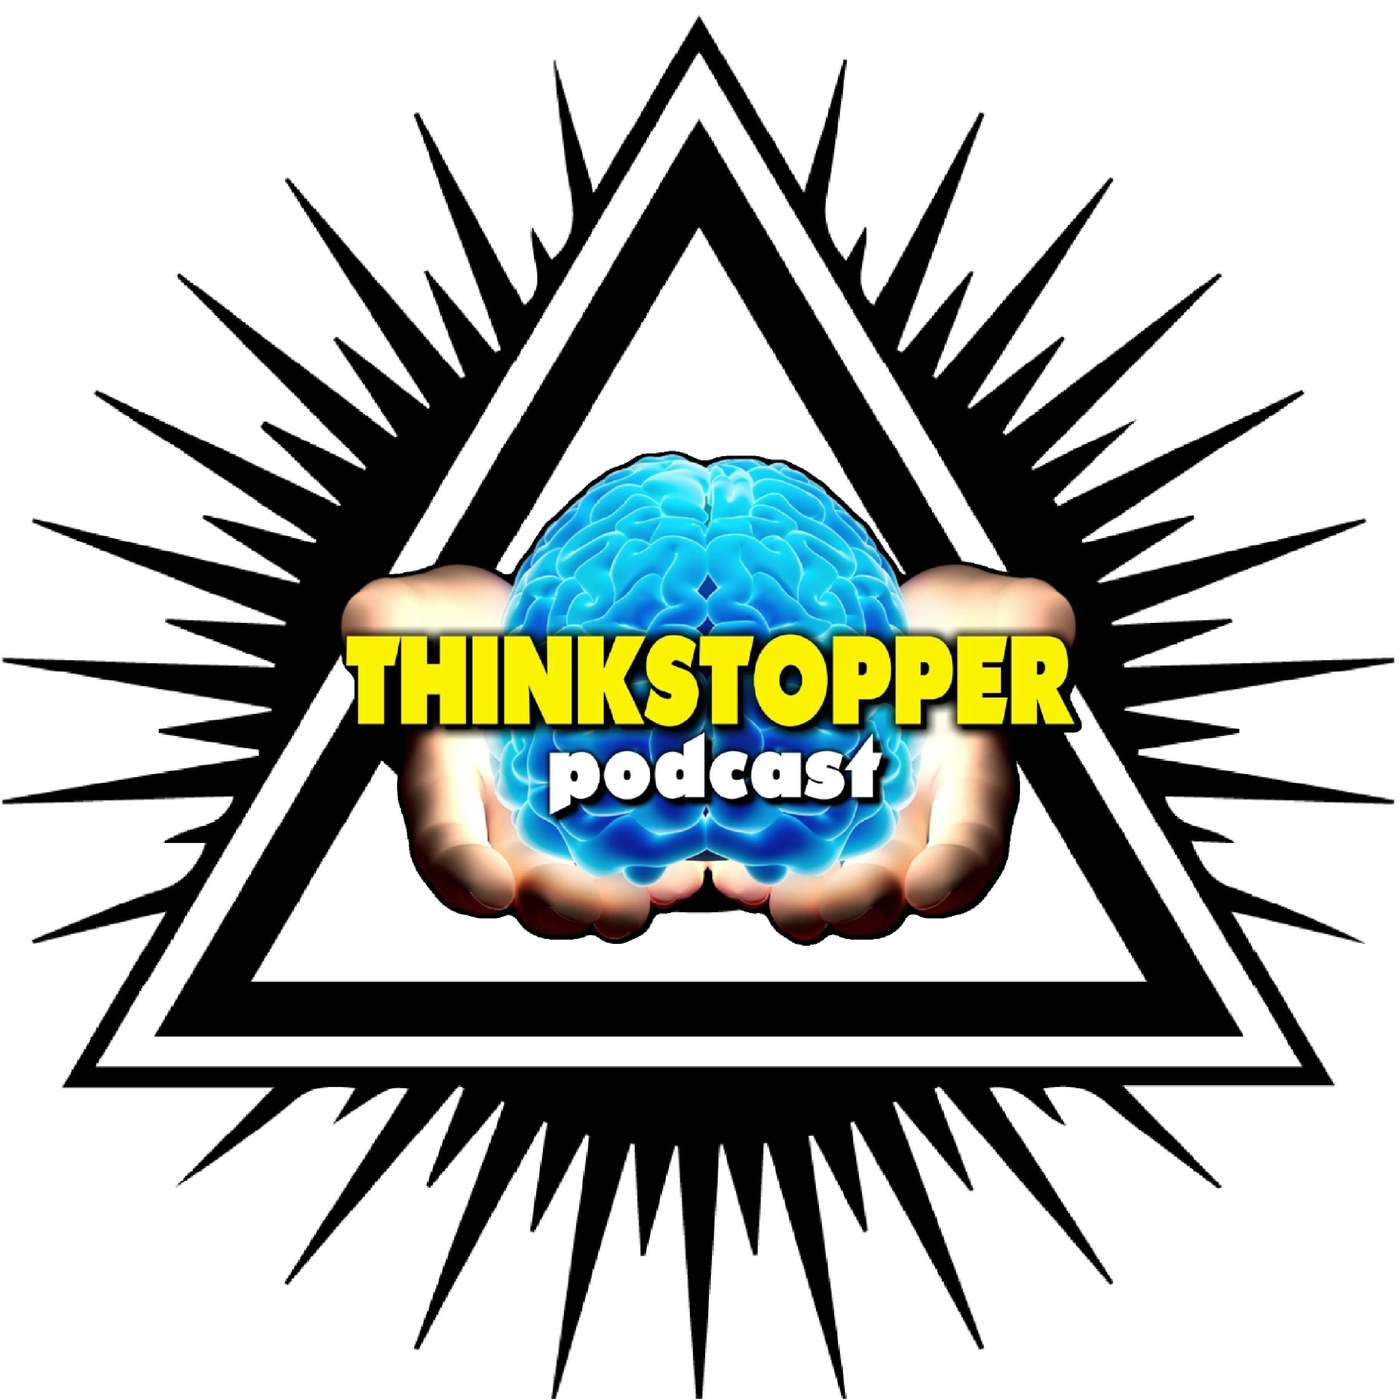 ThinkStopper Podcast